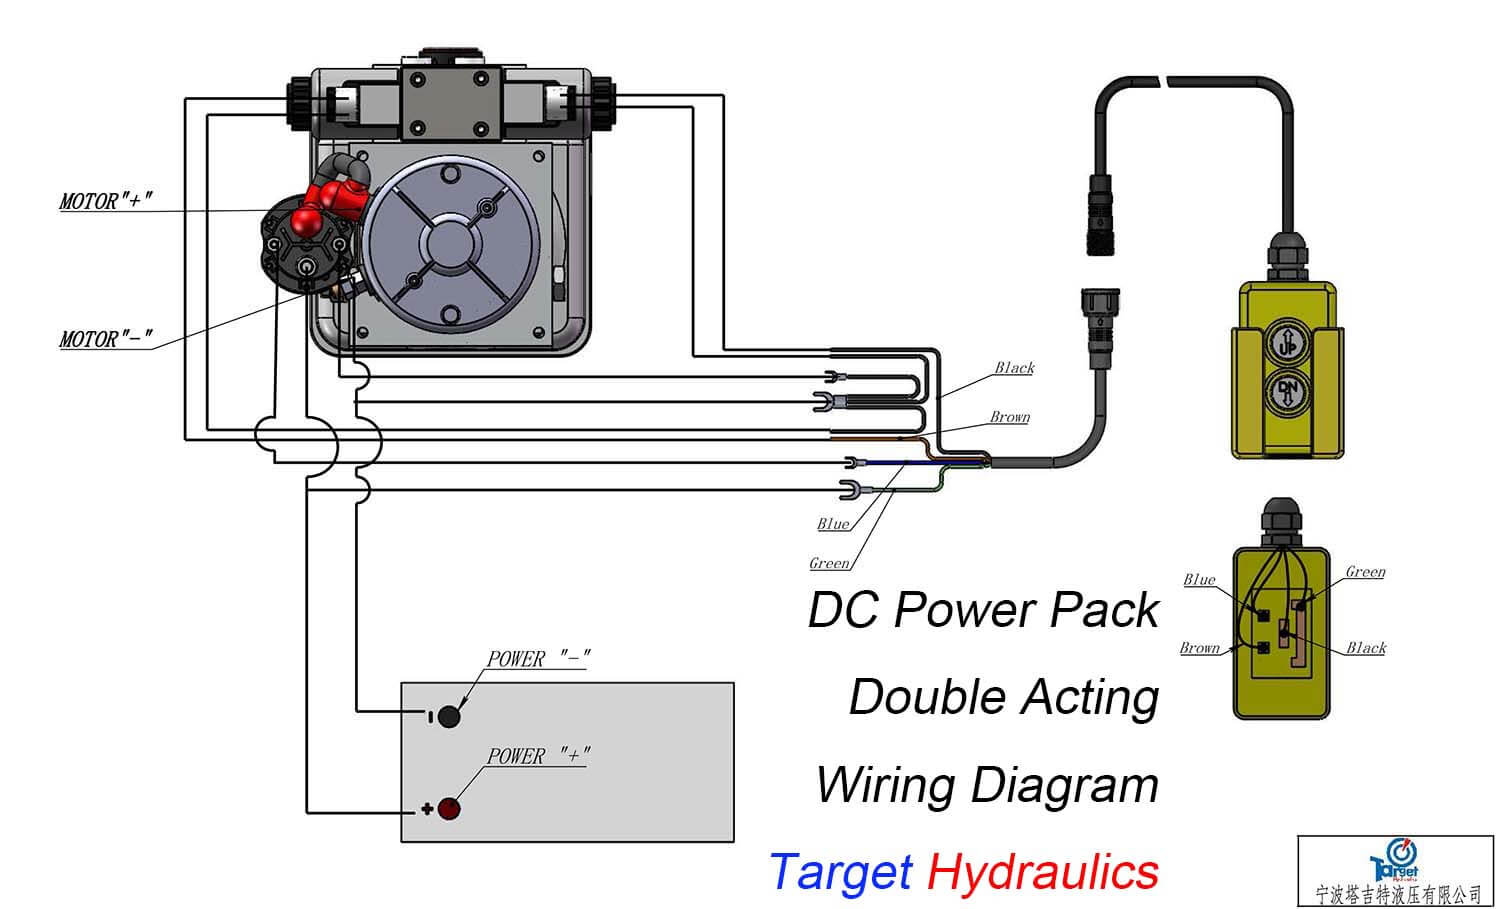 How to Wire_DC Motor Double Acting Power Pack how to wire hydraulic power pack,power unit diagram design dump trailer hydraulic pump wiring diagram at gsmportal.co